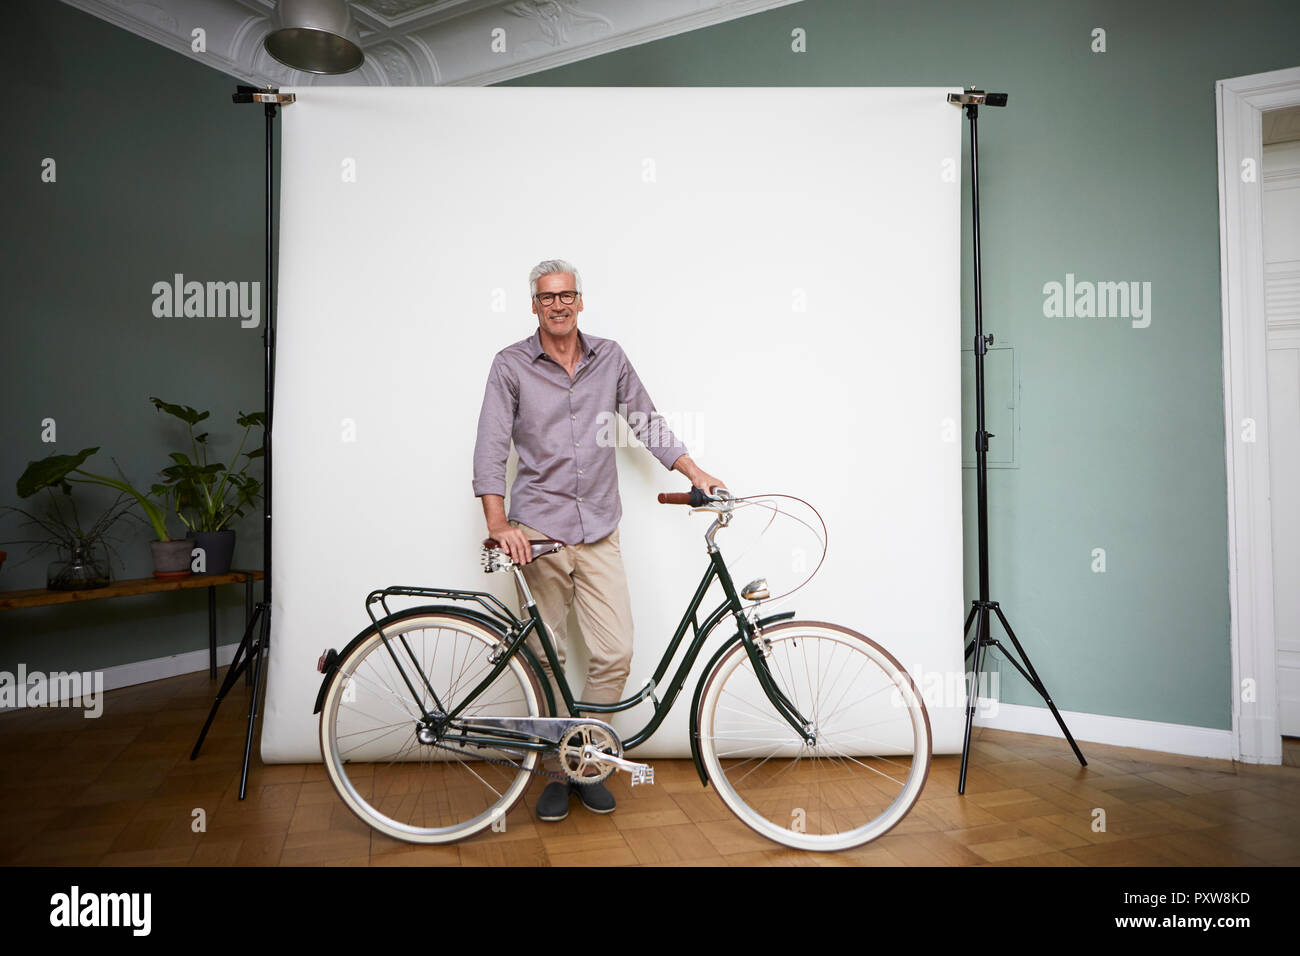 Portait of mature man posing with bicycle at projection screen - Stock Image